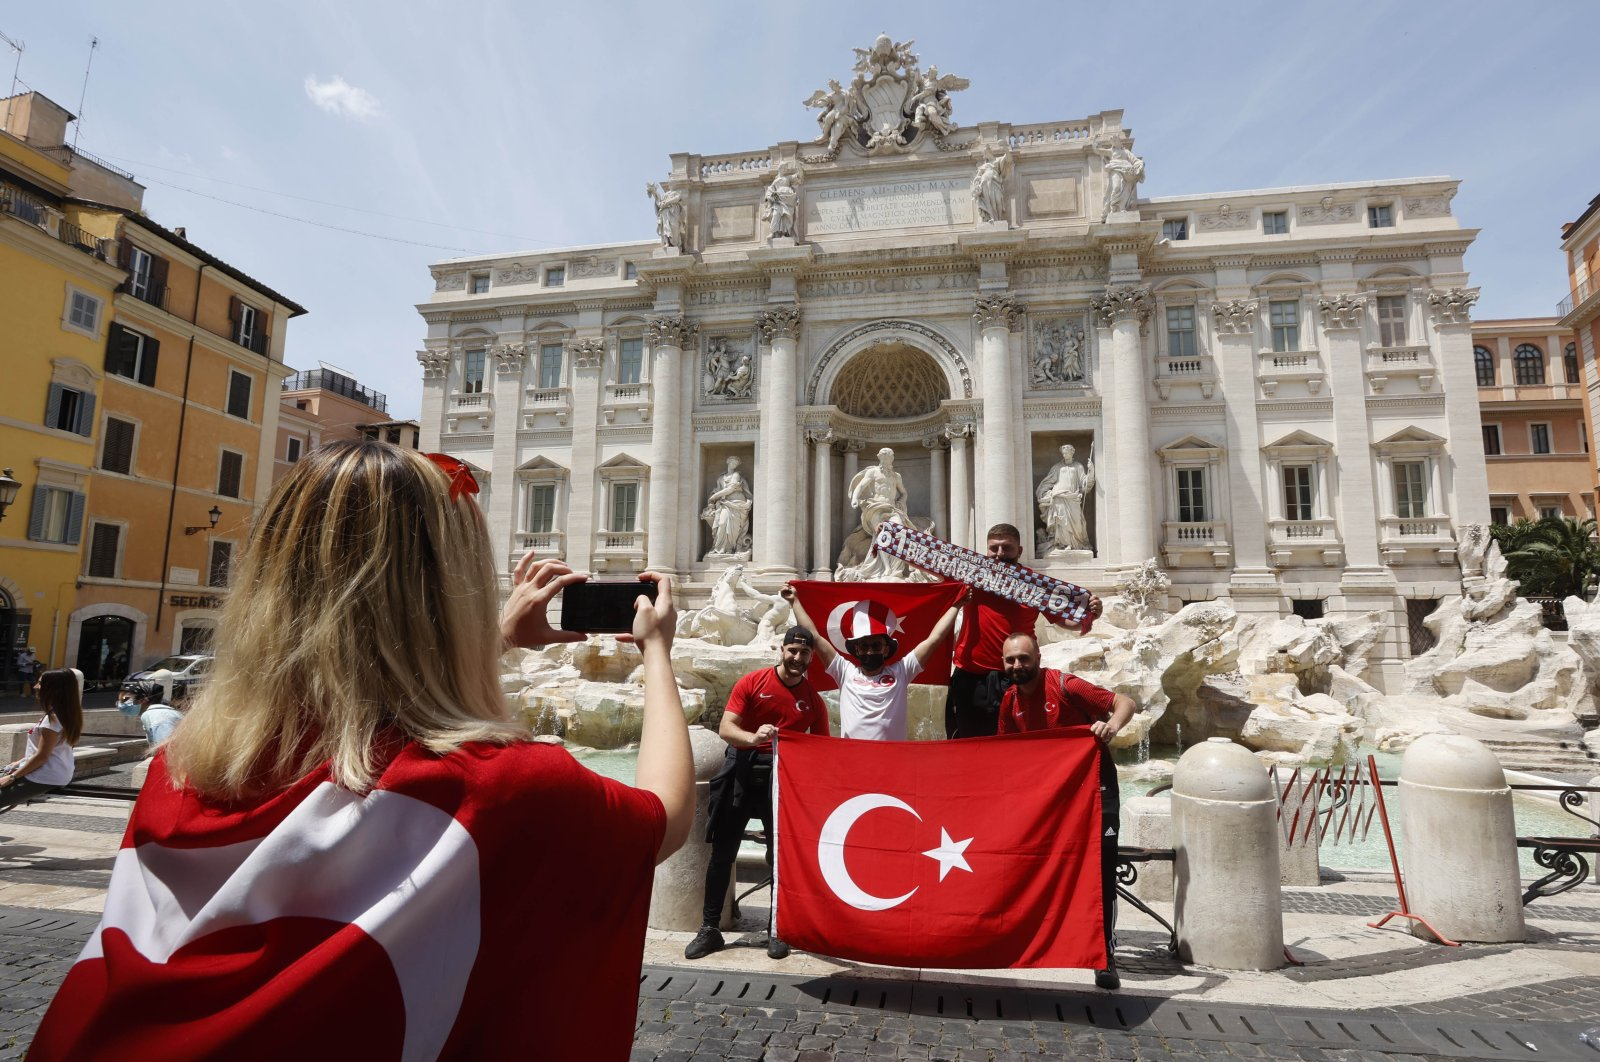 Turkish fans pose in front of Trevi fountain ahead of a national football match between Italy and Turkey, in Rome, Italy, June 11, 2021. (AA PHOTO)